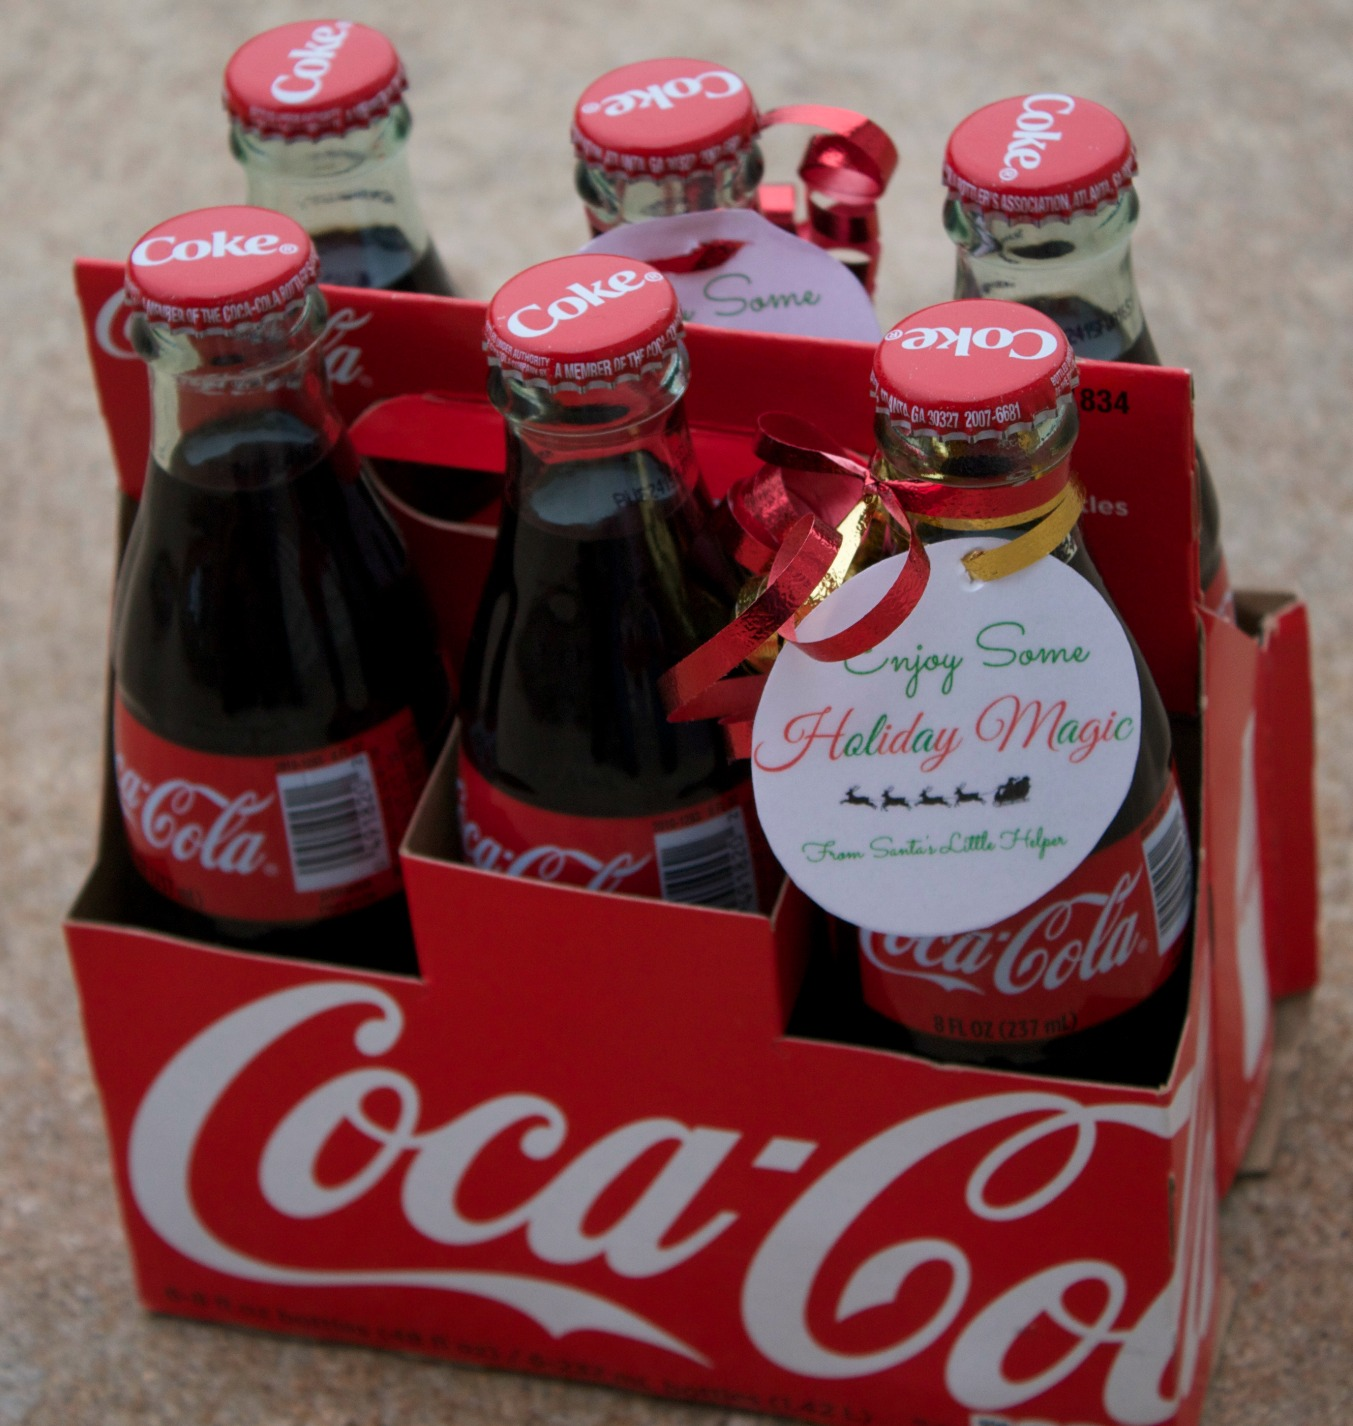 real magic-coke bottle labels